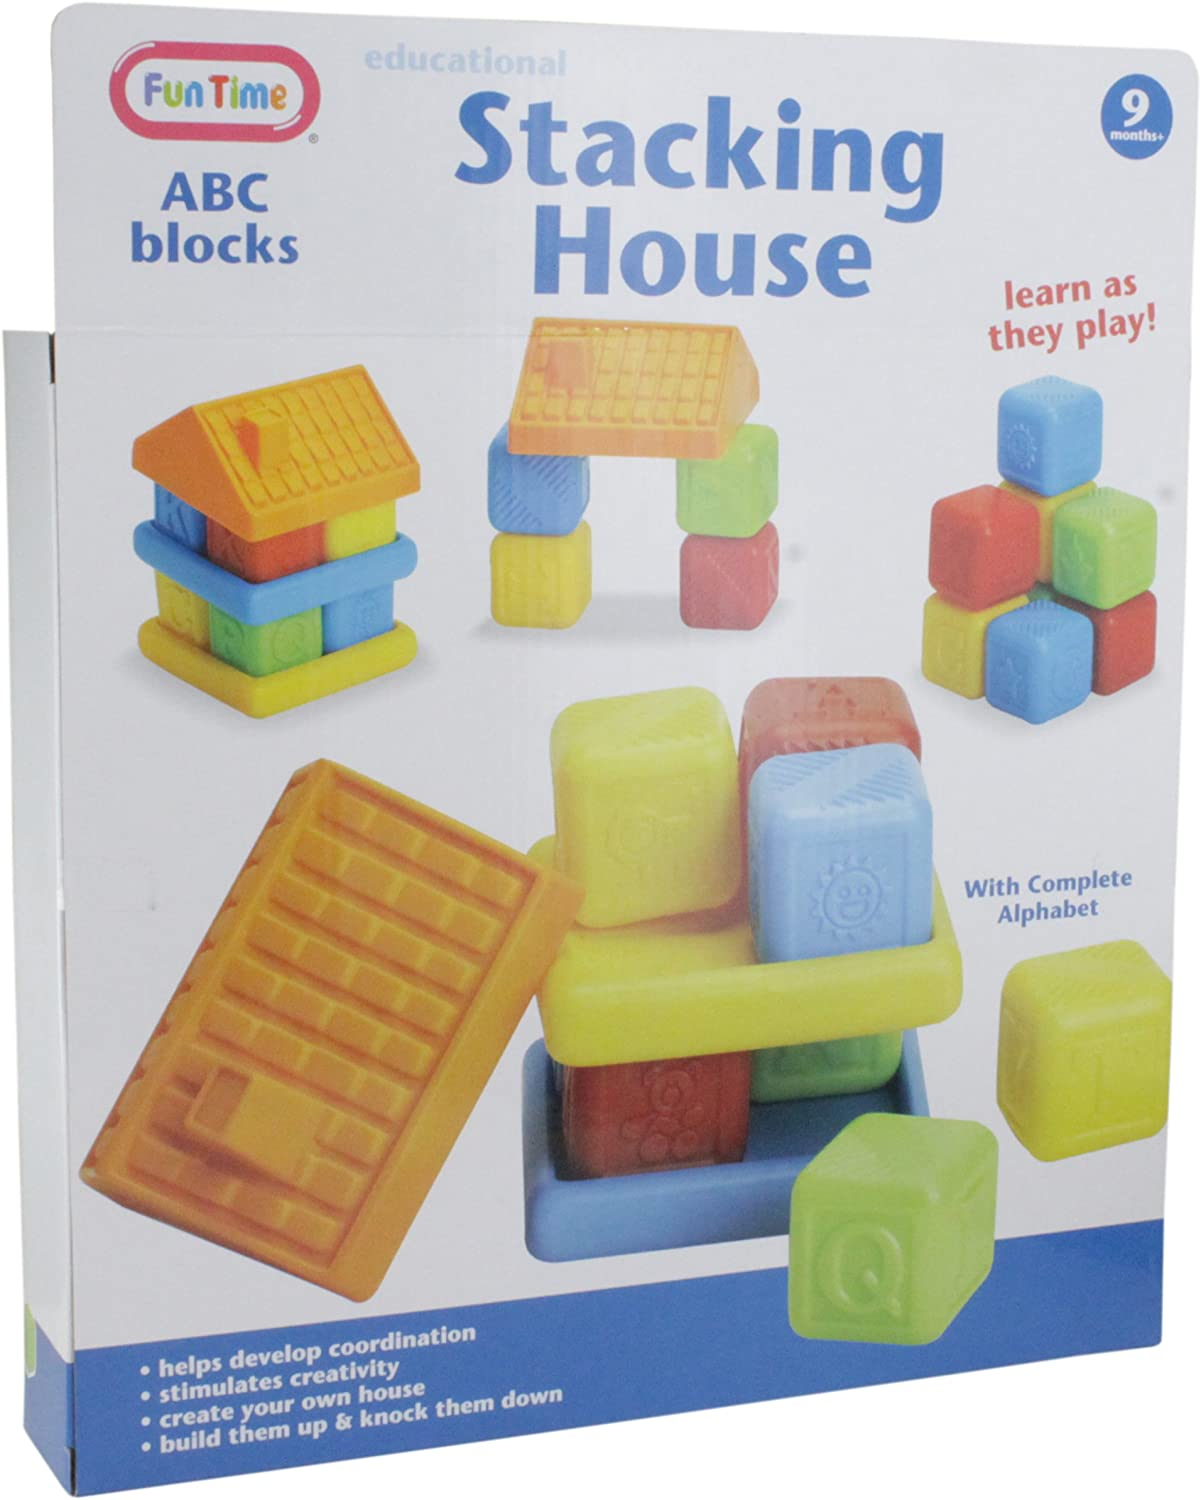 Fun Time Building And Stacking Set With Complete Alhphabet Blocks And Stacking